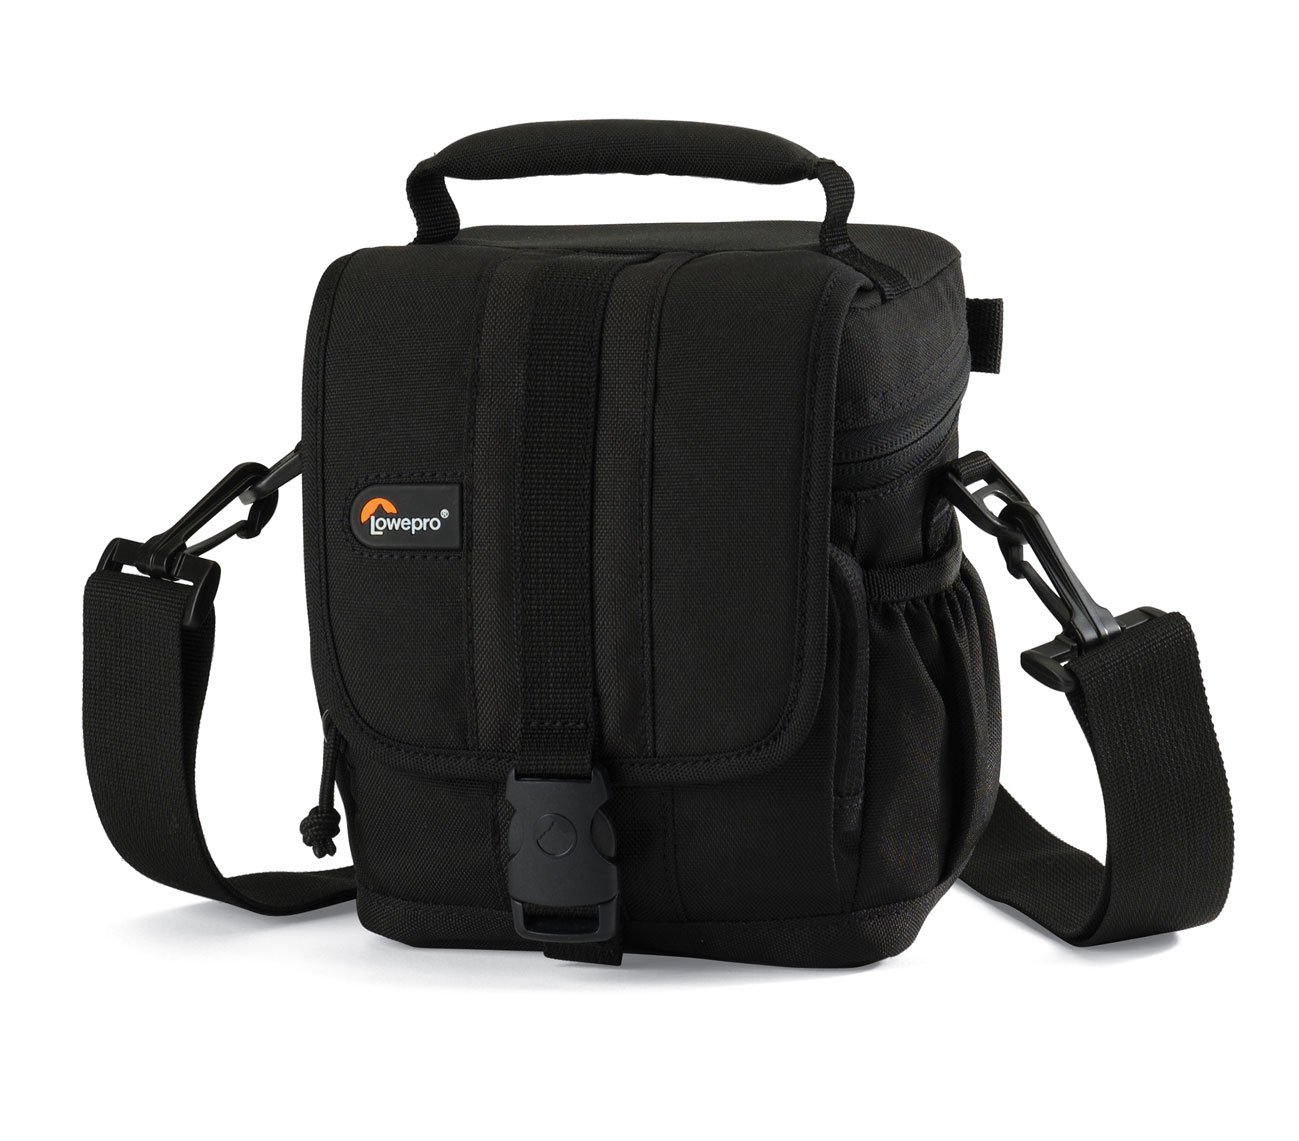 Lowepro Camera Bags Shoulder Adventura 160 Black 60